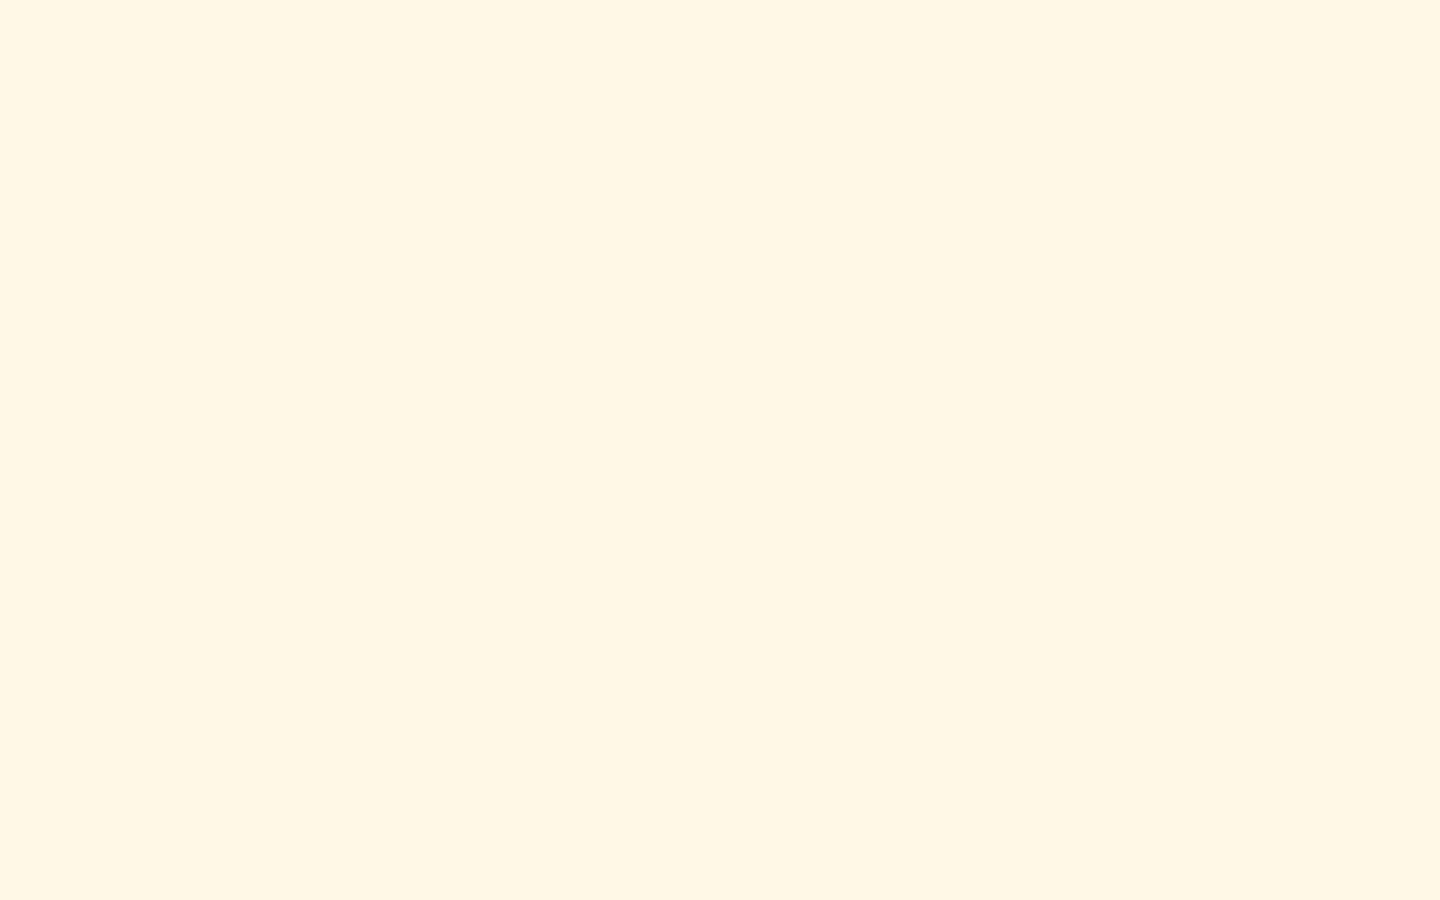 1440x900 Cosmic Latte Solid Color Background